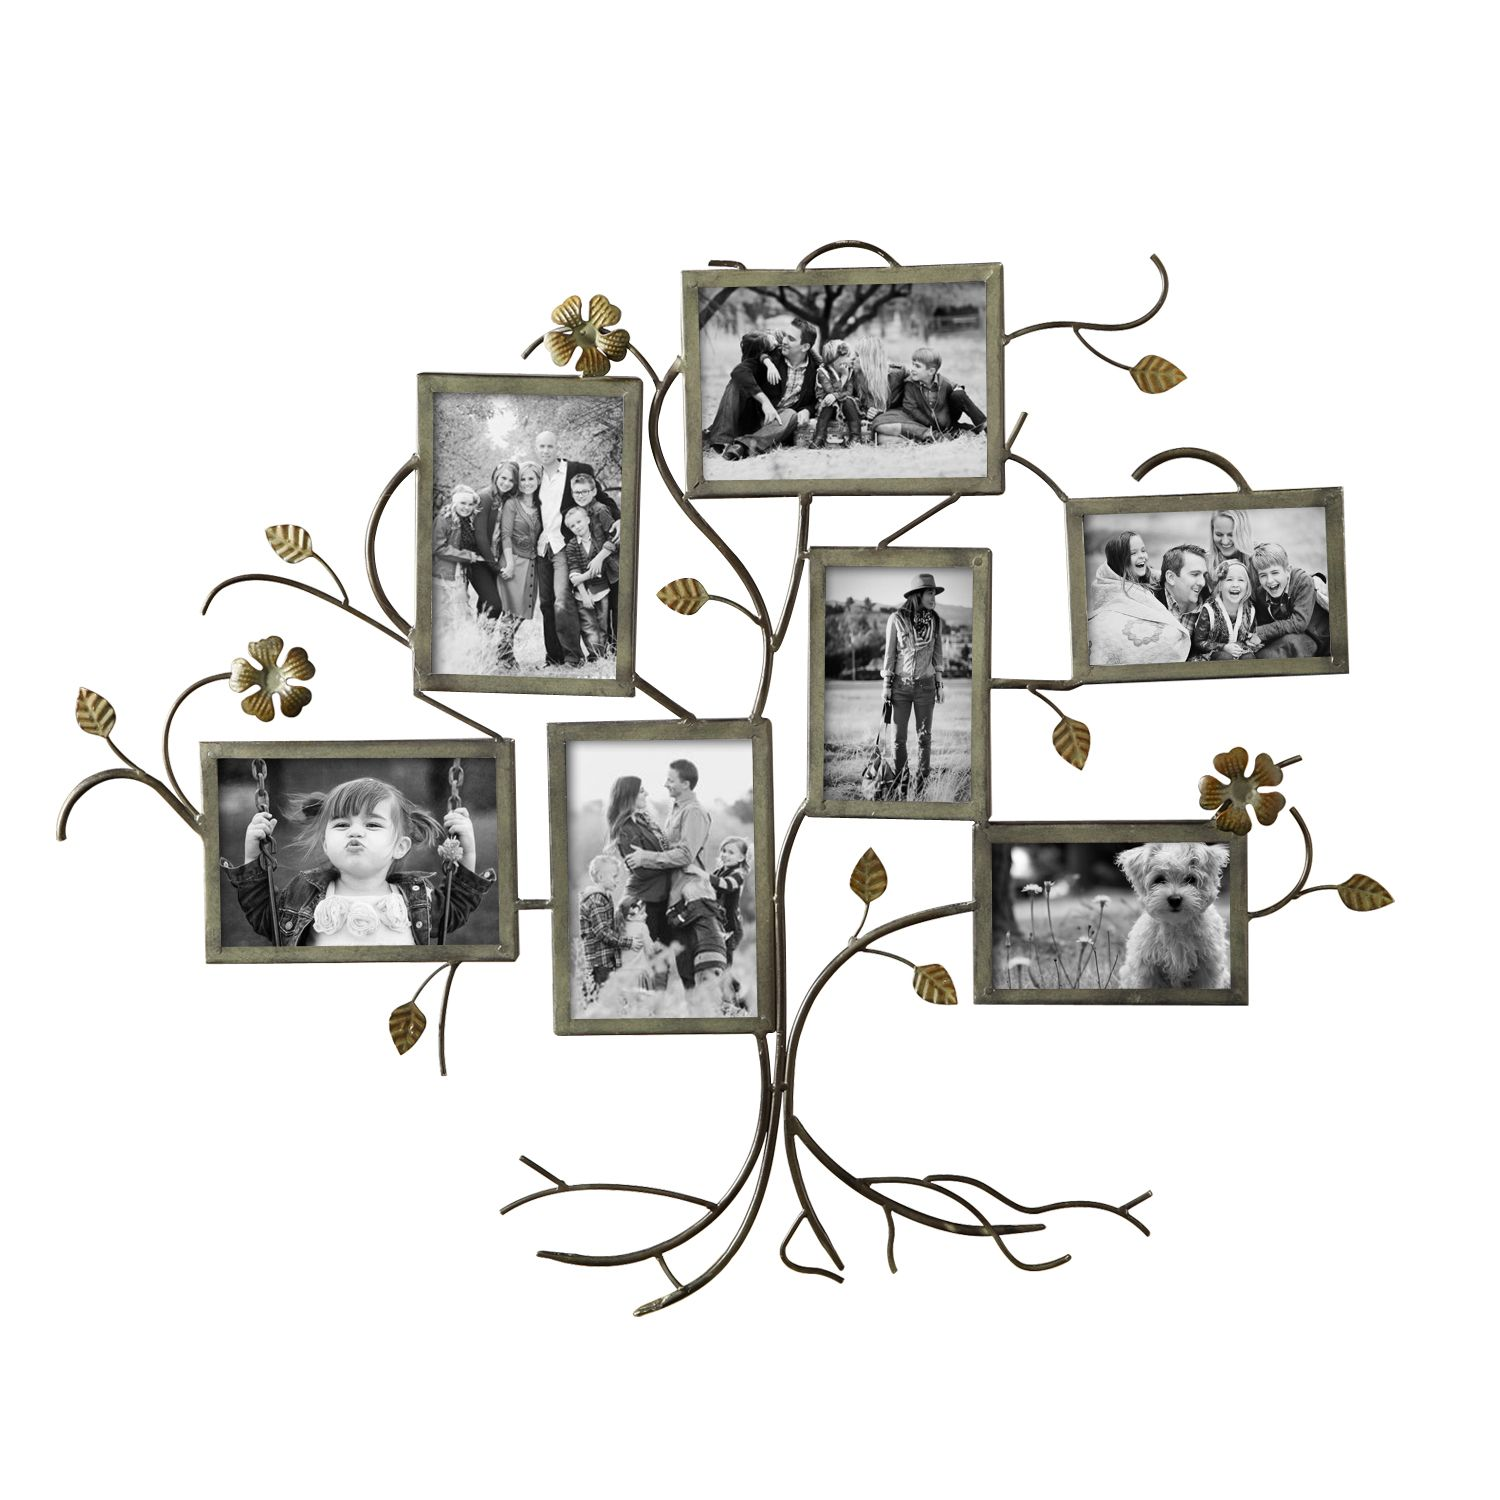 Family Tree Picture Frame Wall Hanging adeco decorative bronze-color iron tree wall hanging collage